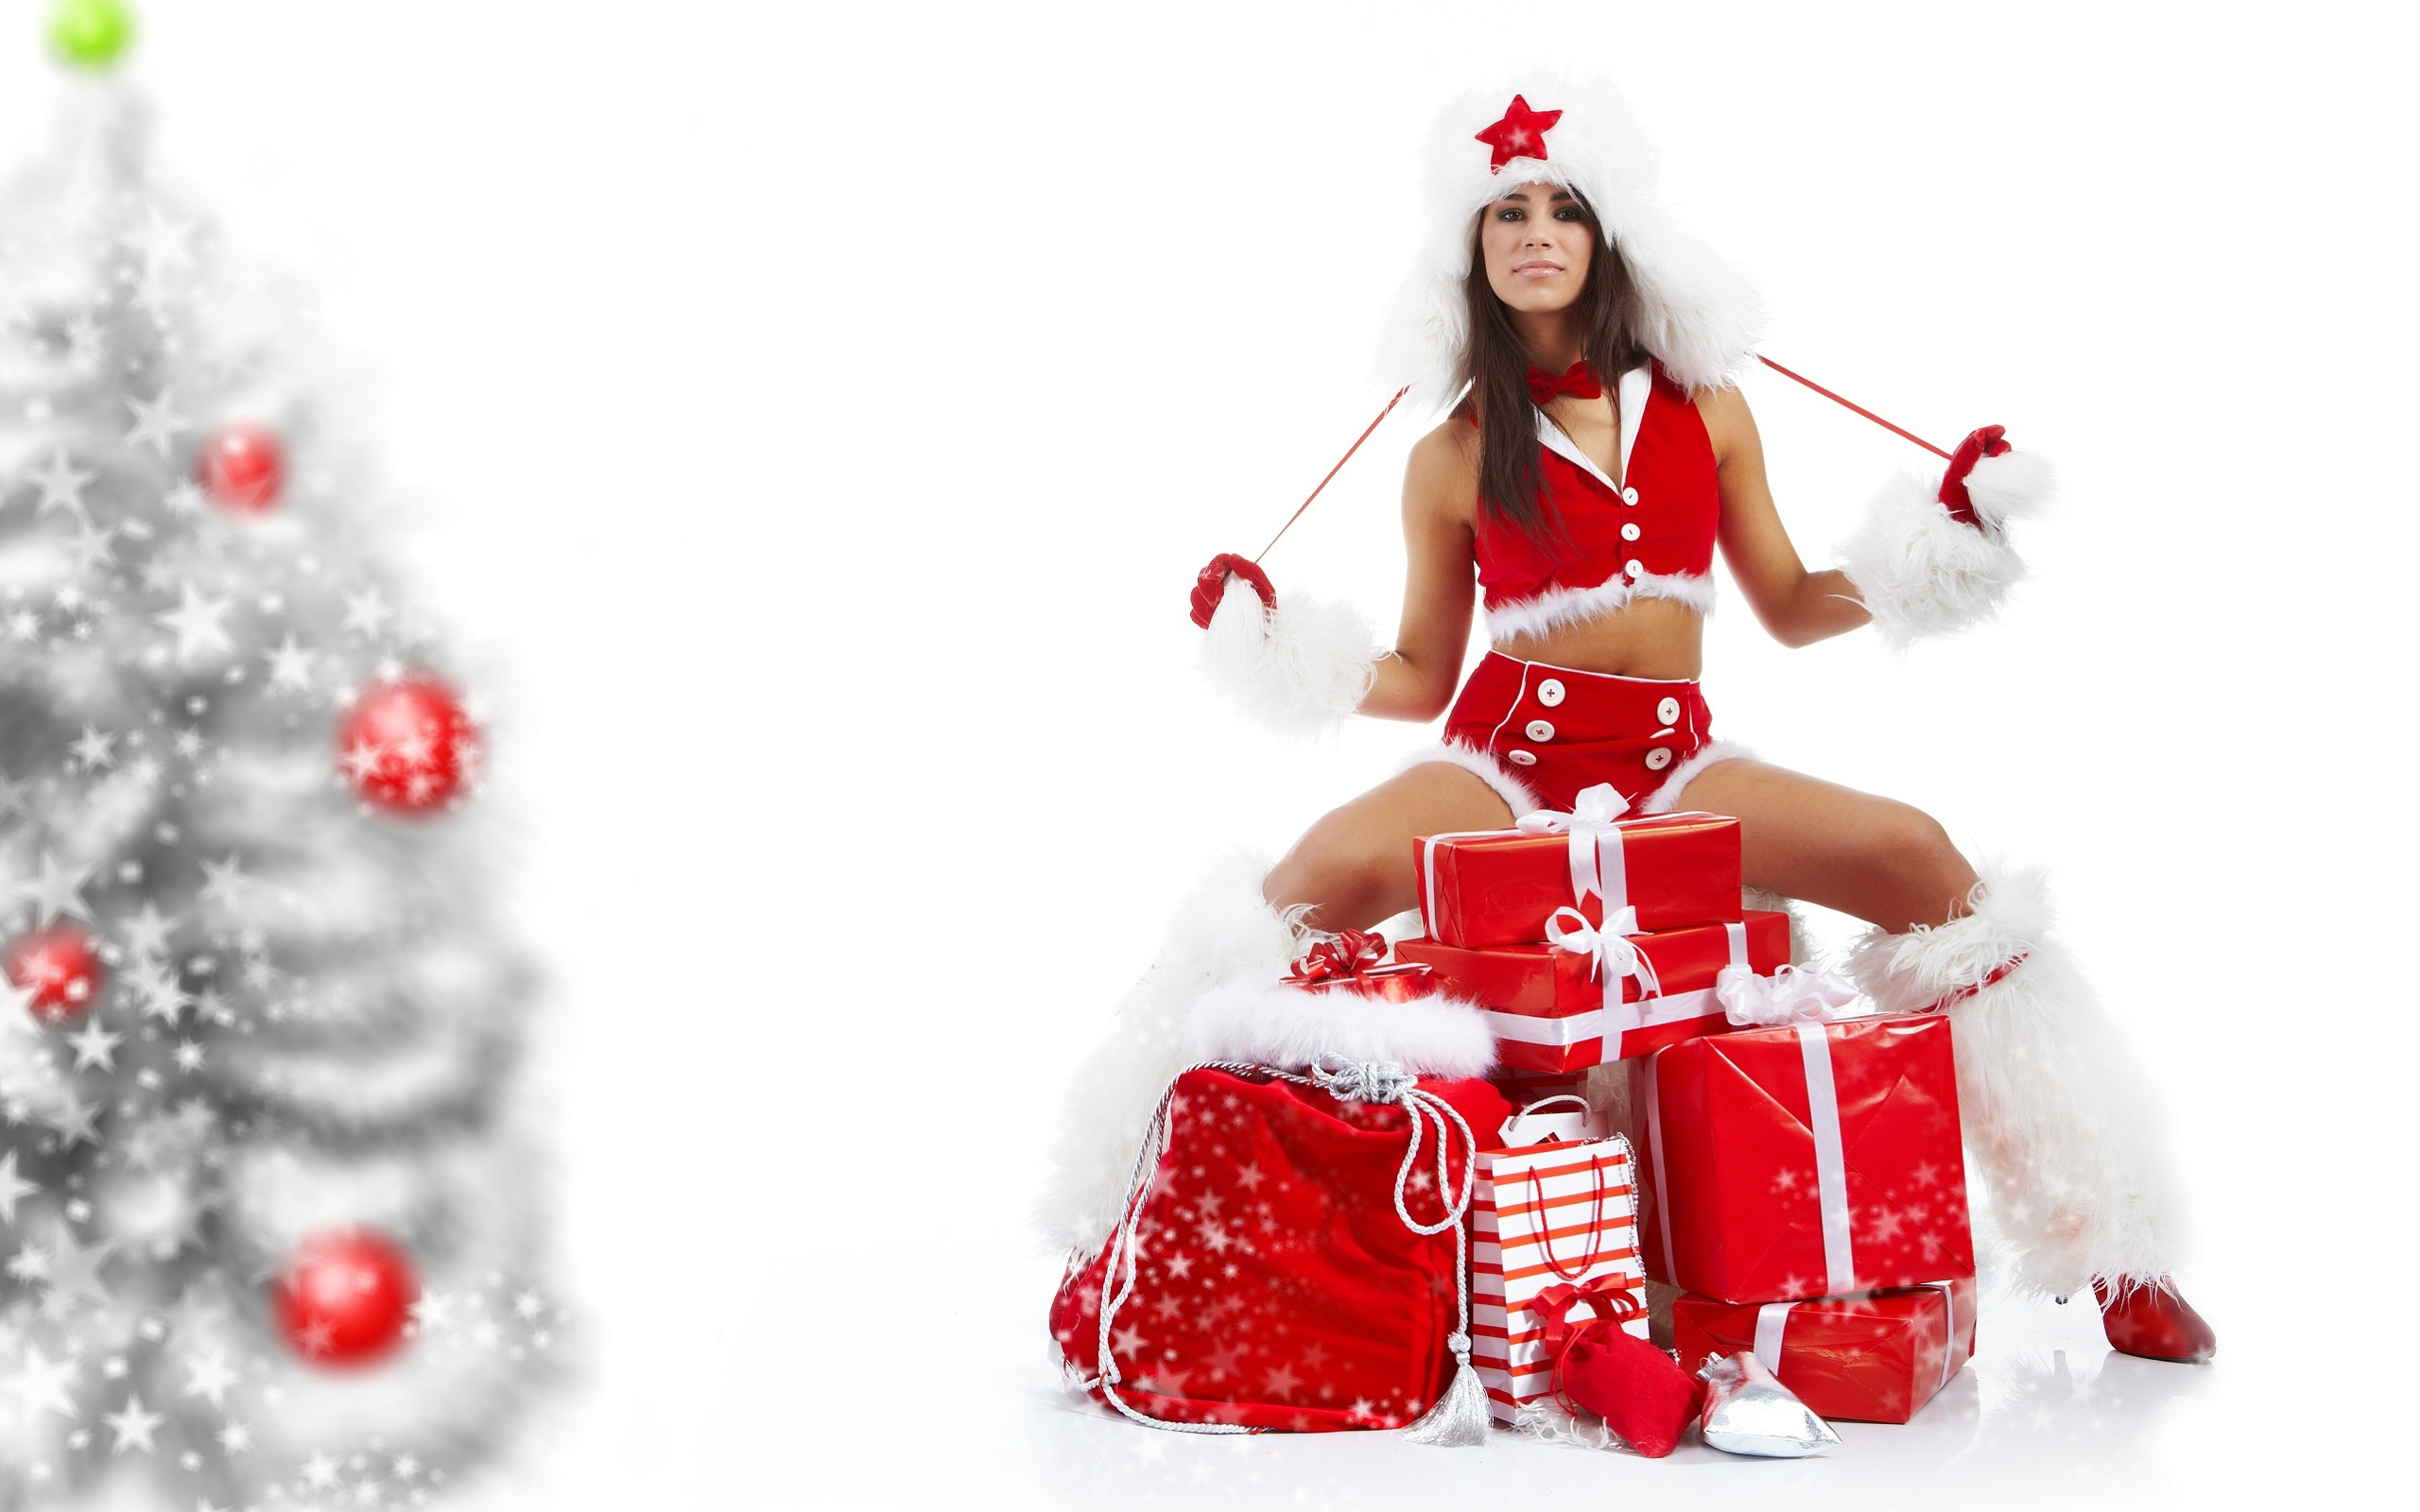 Christmas Gifts 2014 - Wallpaper, High Definition, High Quality ...